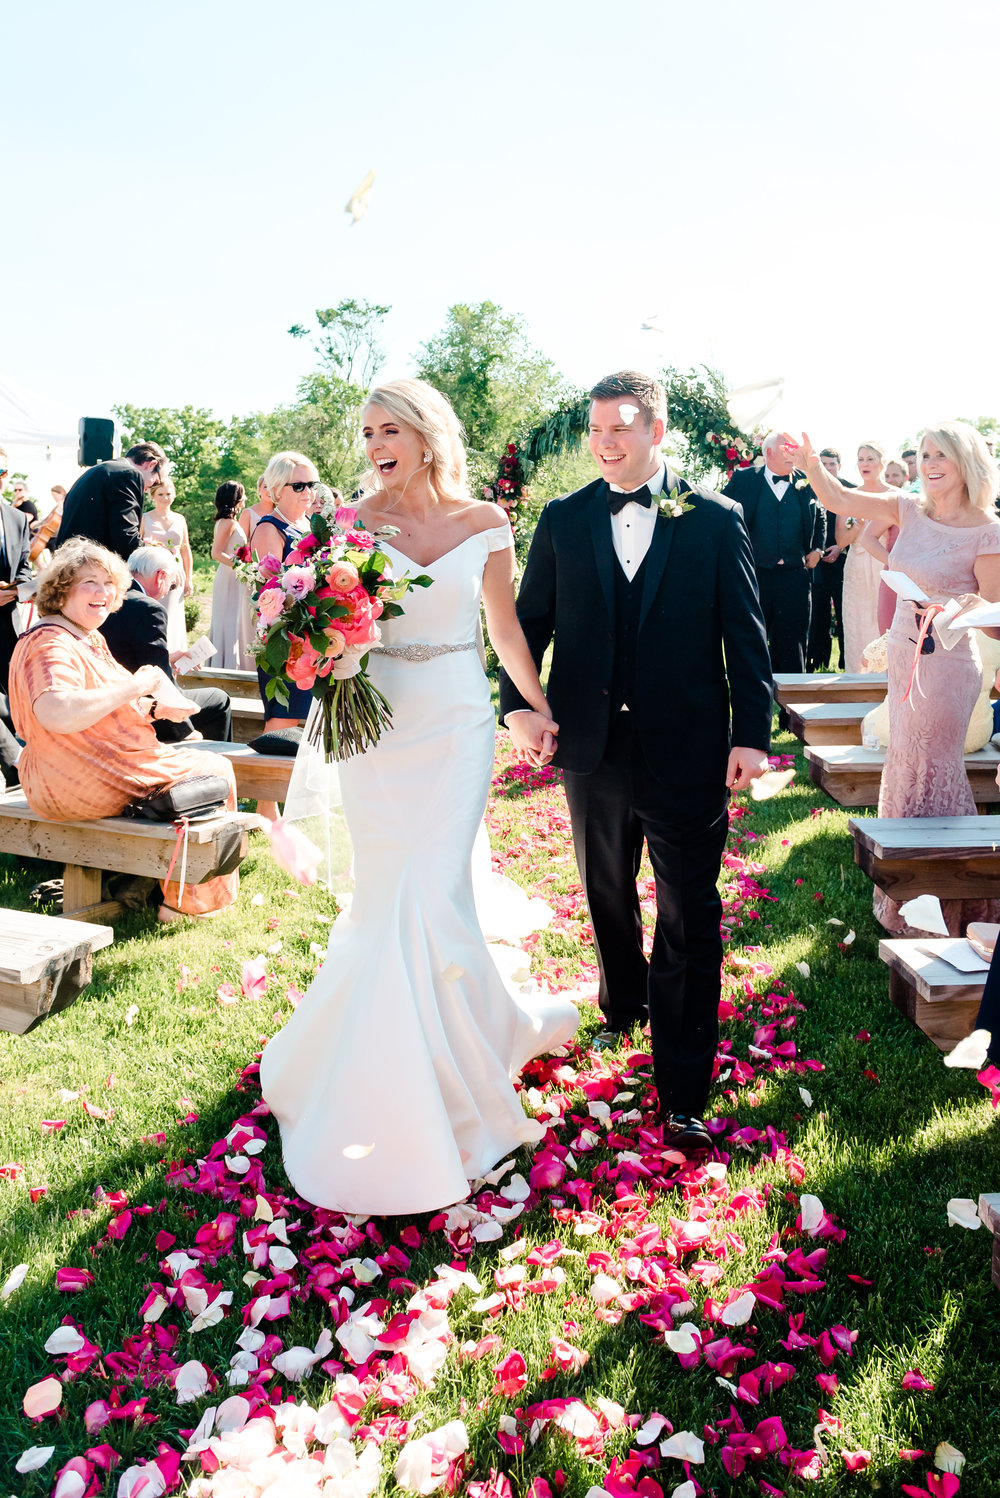 Historic John P Furber Farm Wedding Ceremony Recessional with Rose Petal Toss - Best Wedding Photographers in MN